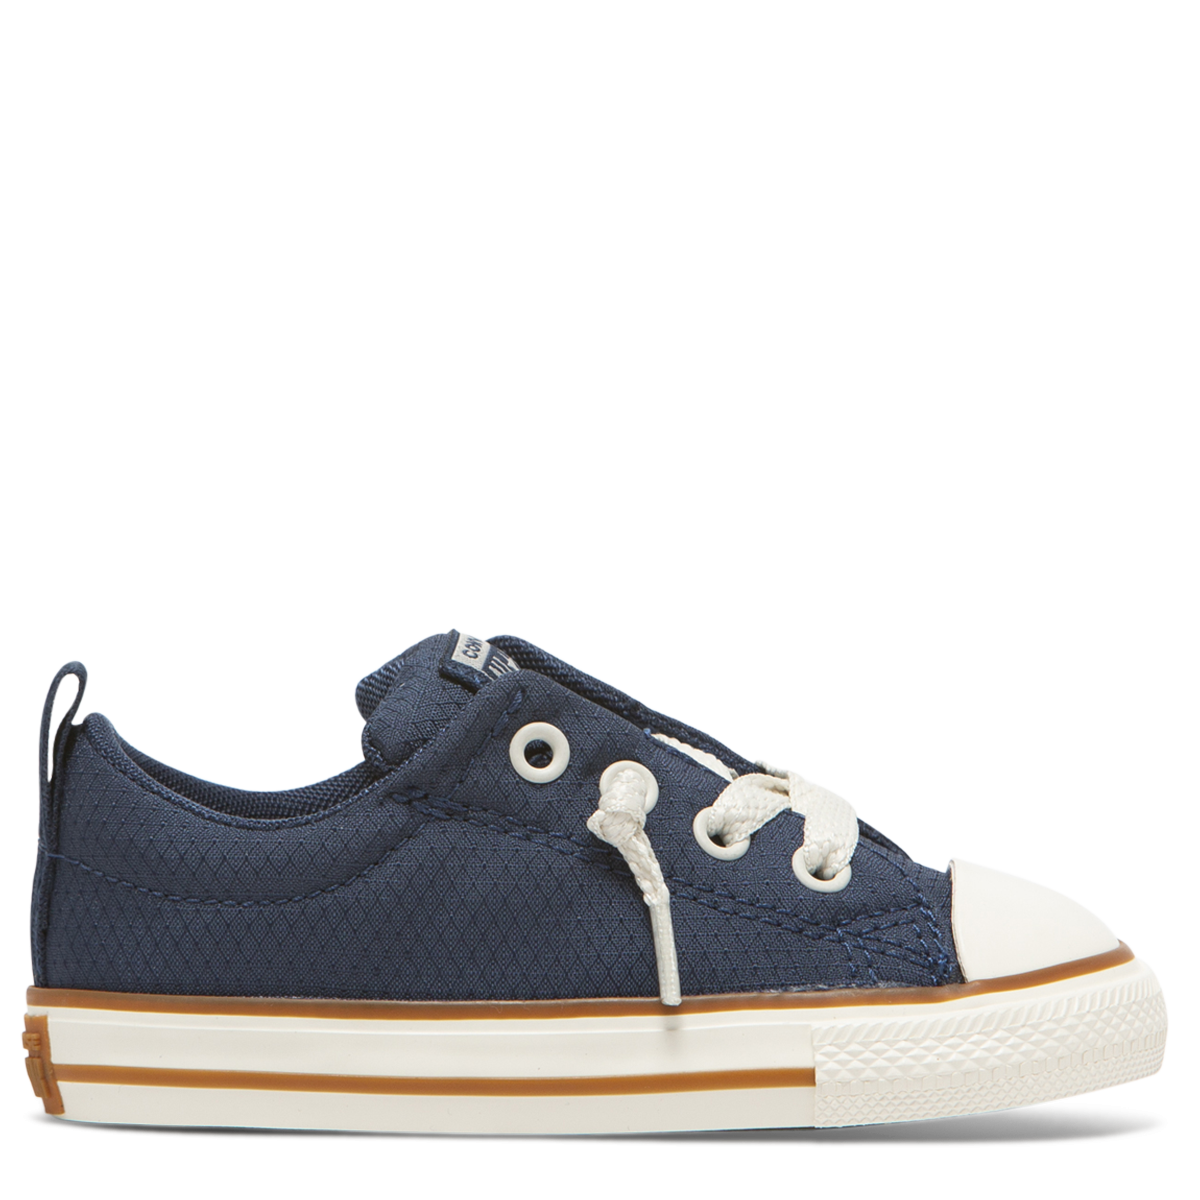 52318791ee9d Converse Chuck Taylor All Star Street Pinstripe Toddler Low Top Navy 7 –  Famous Rock Shop